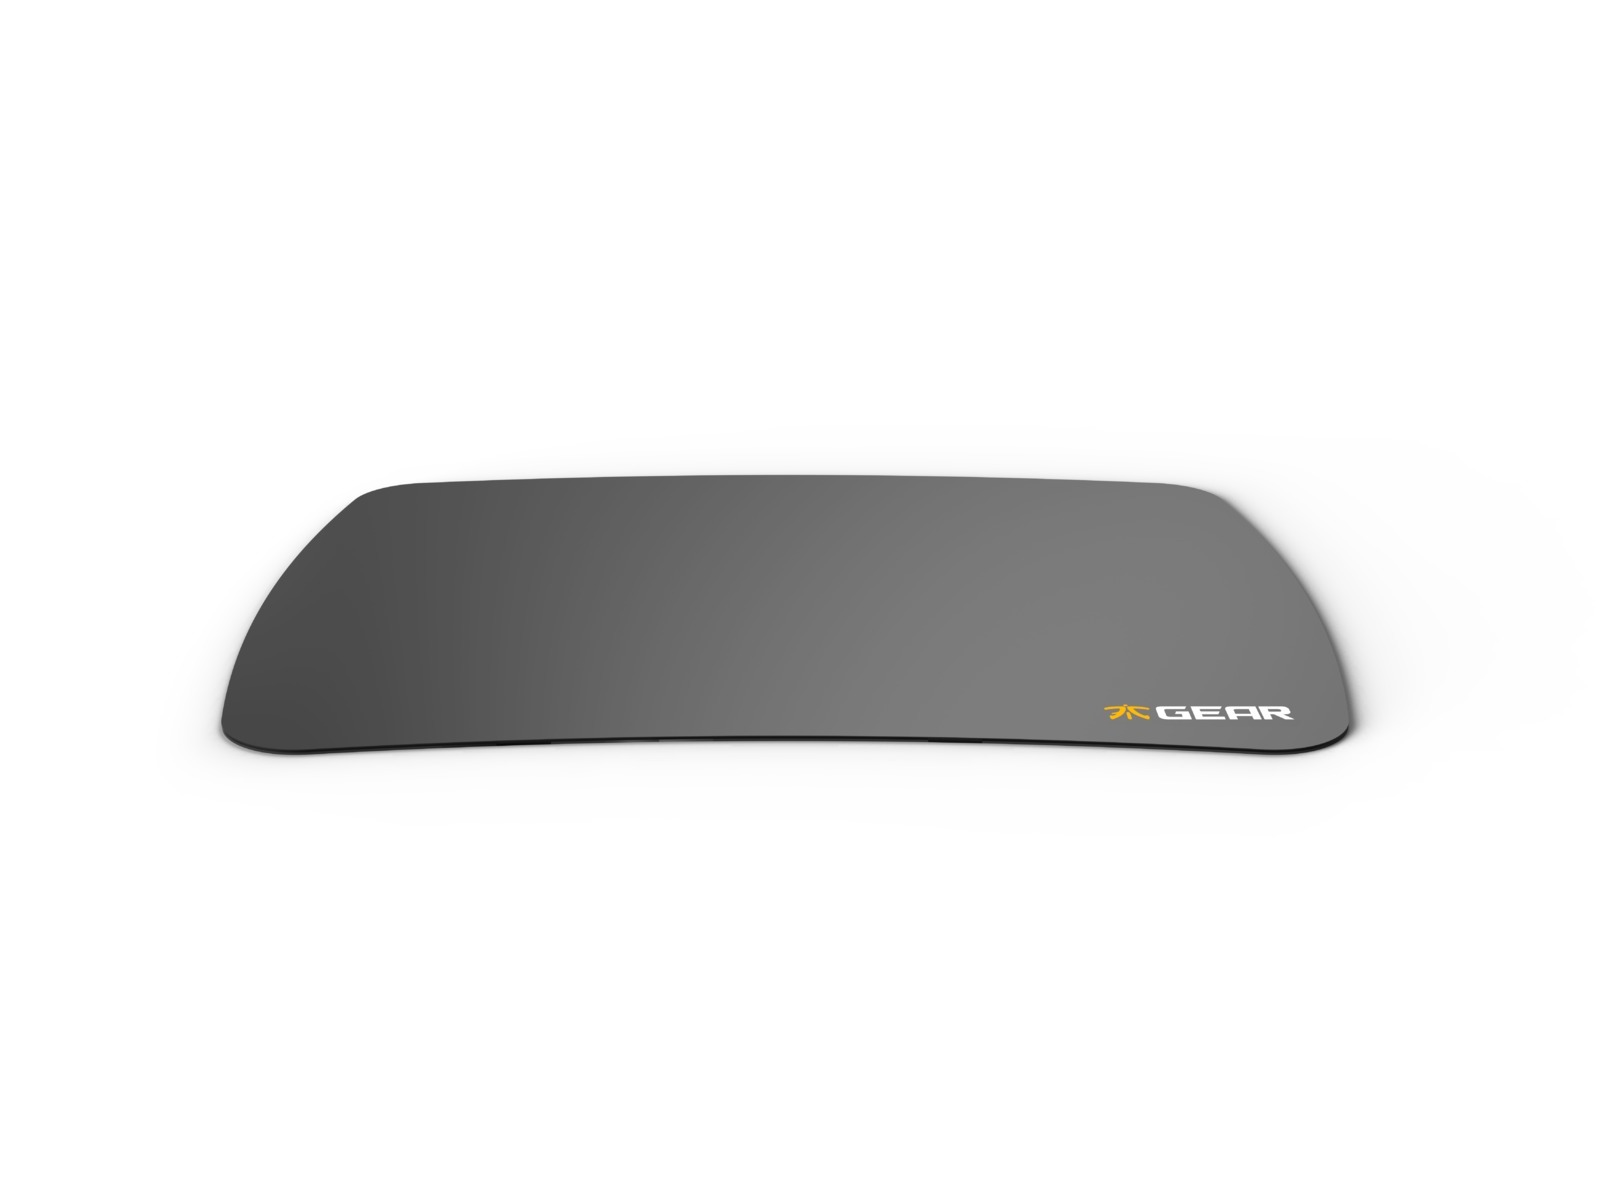 Fnatic Boost Pro Gaming Mousepad - Speed XL for PC Games image